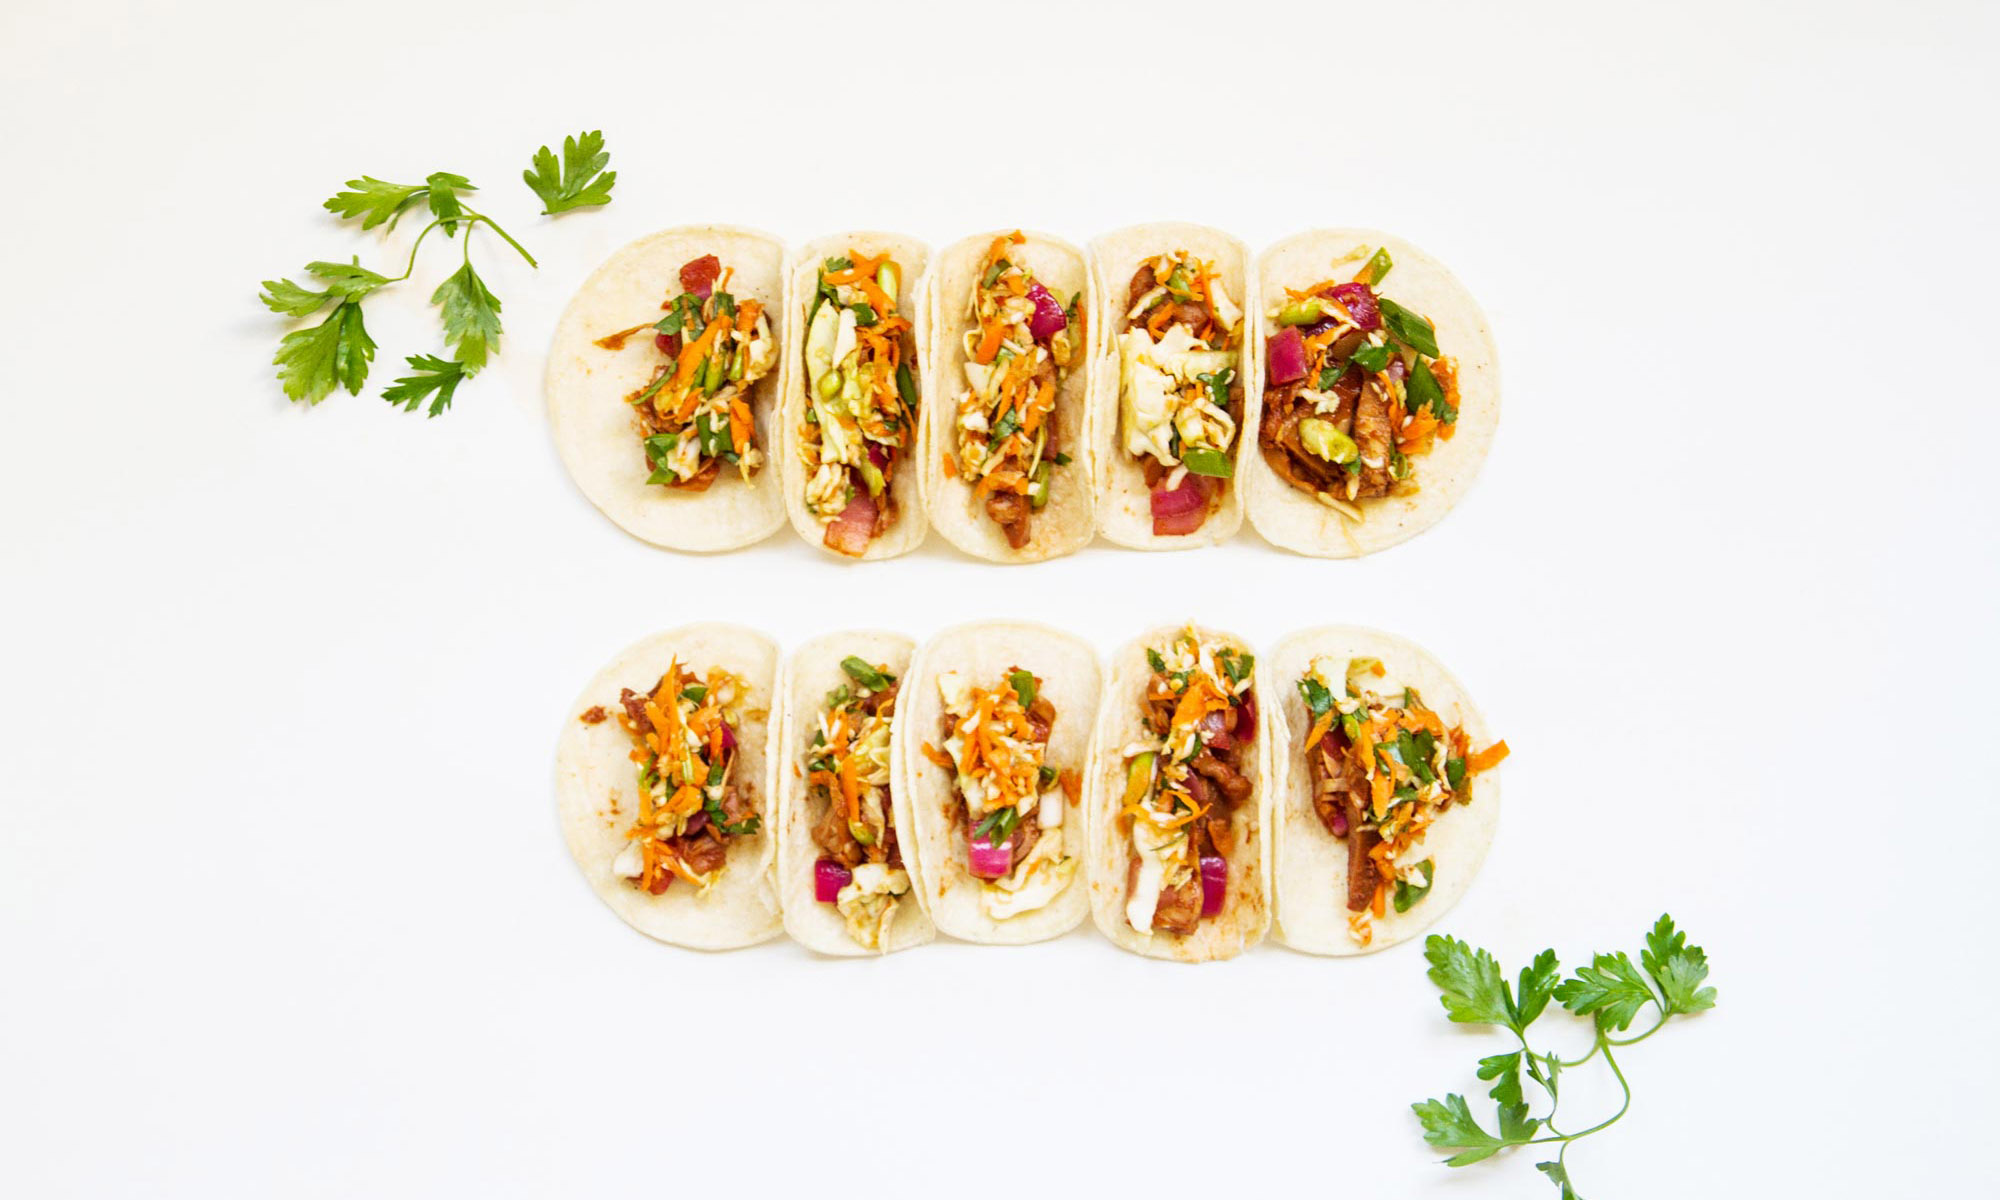 Bar-B-Que Jackfruit Tacos